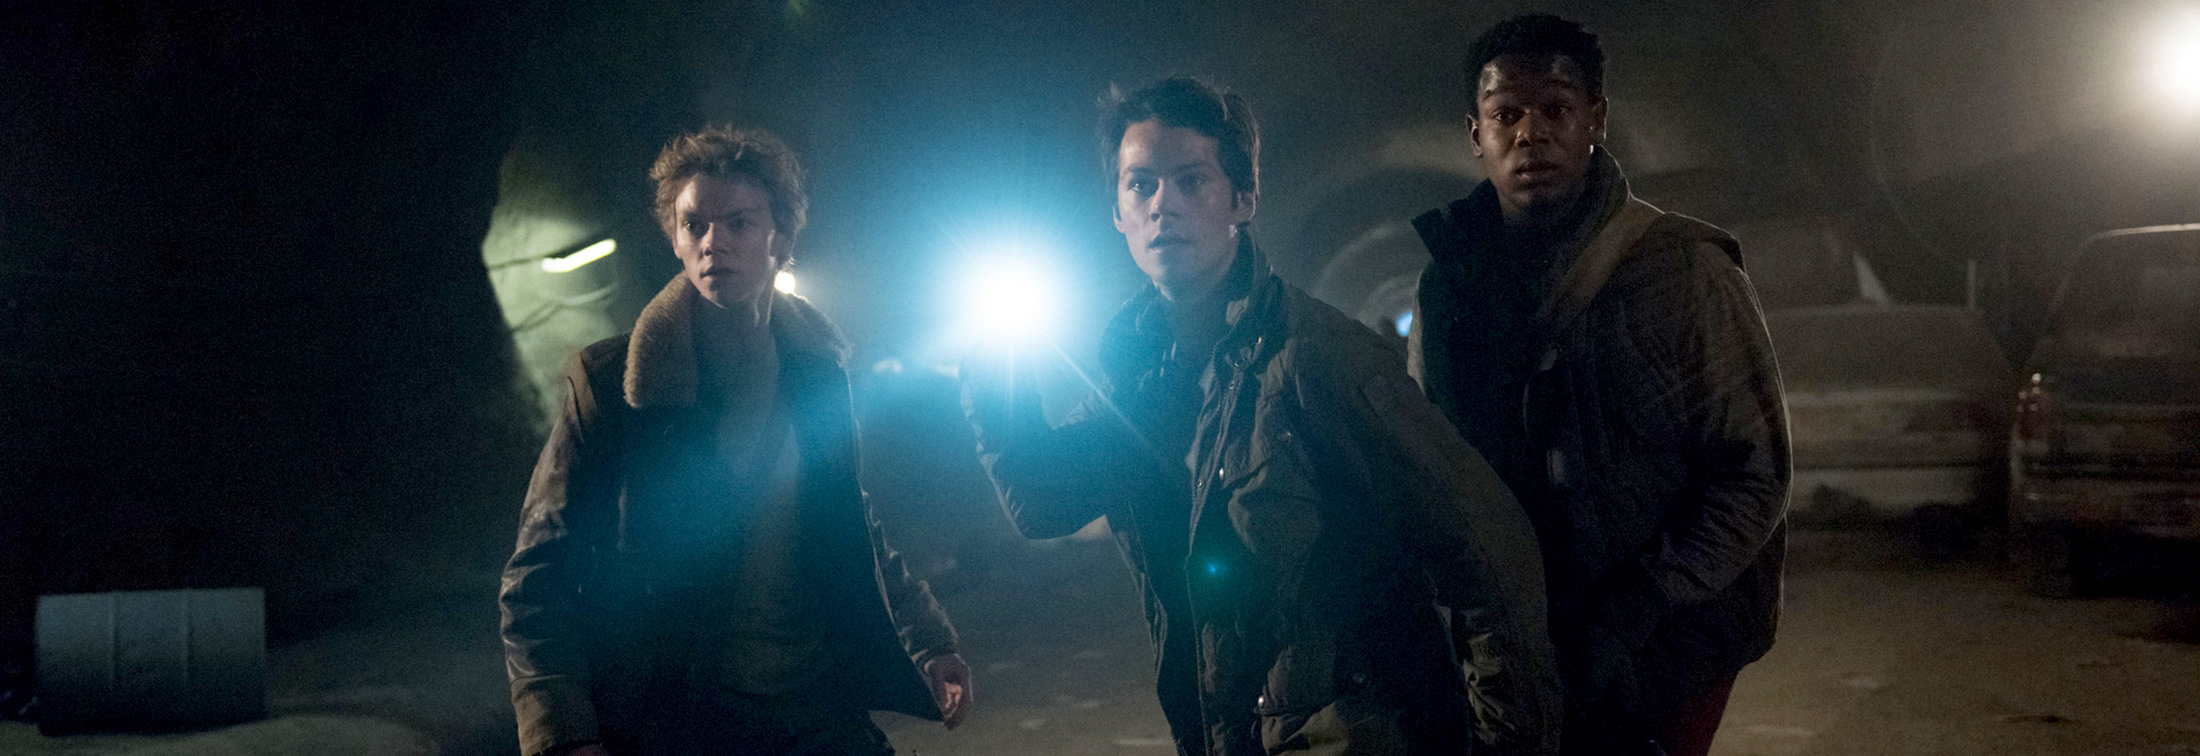 Maze Runner: The Death Cure - A solid ending to an entertaining franchise